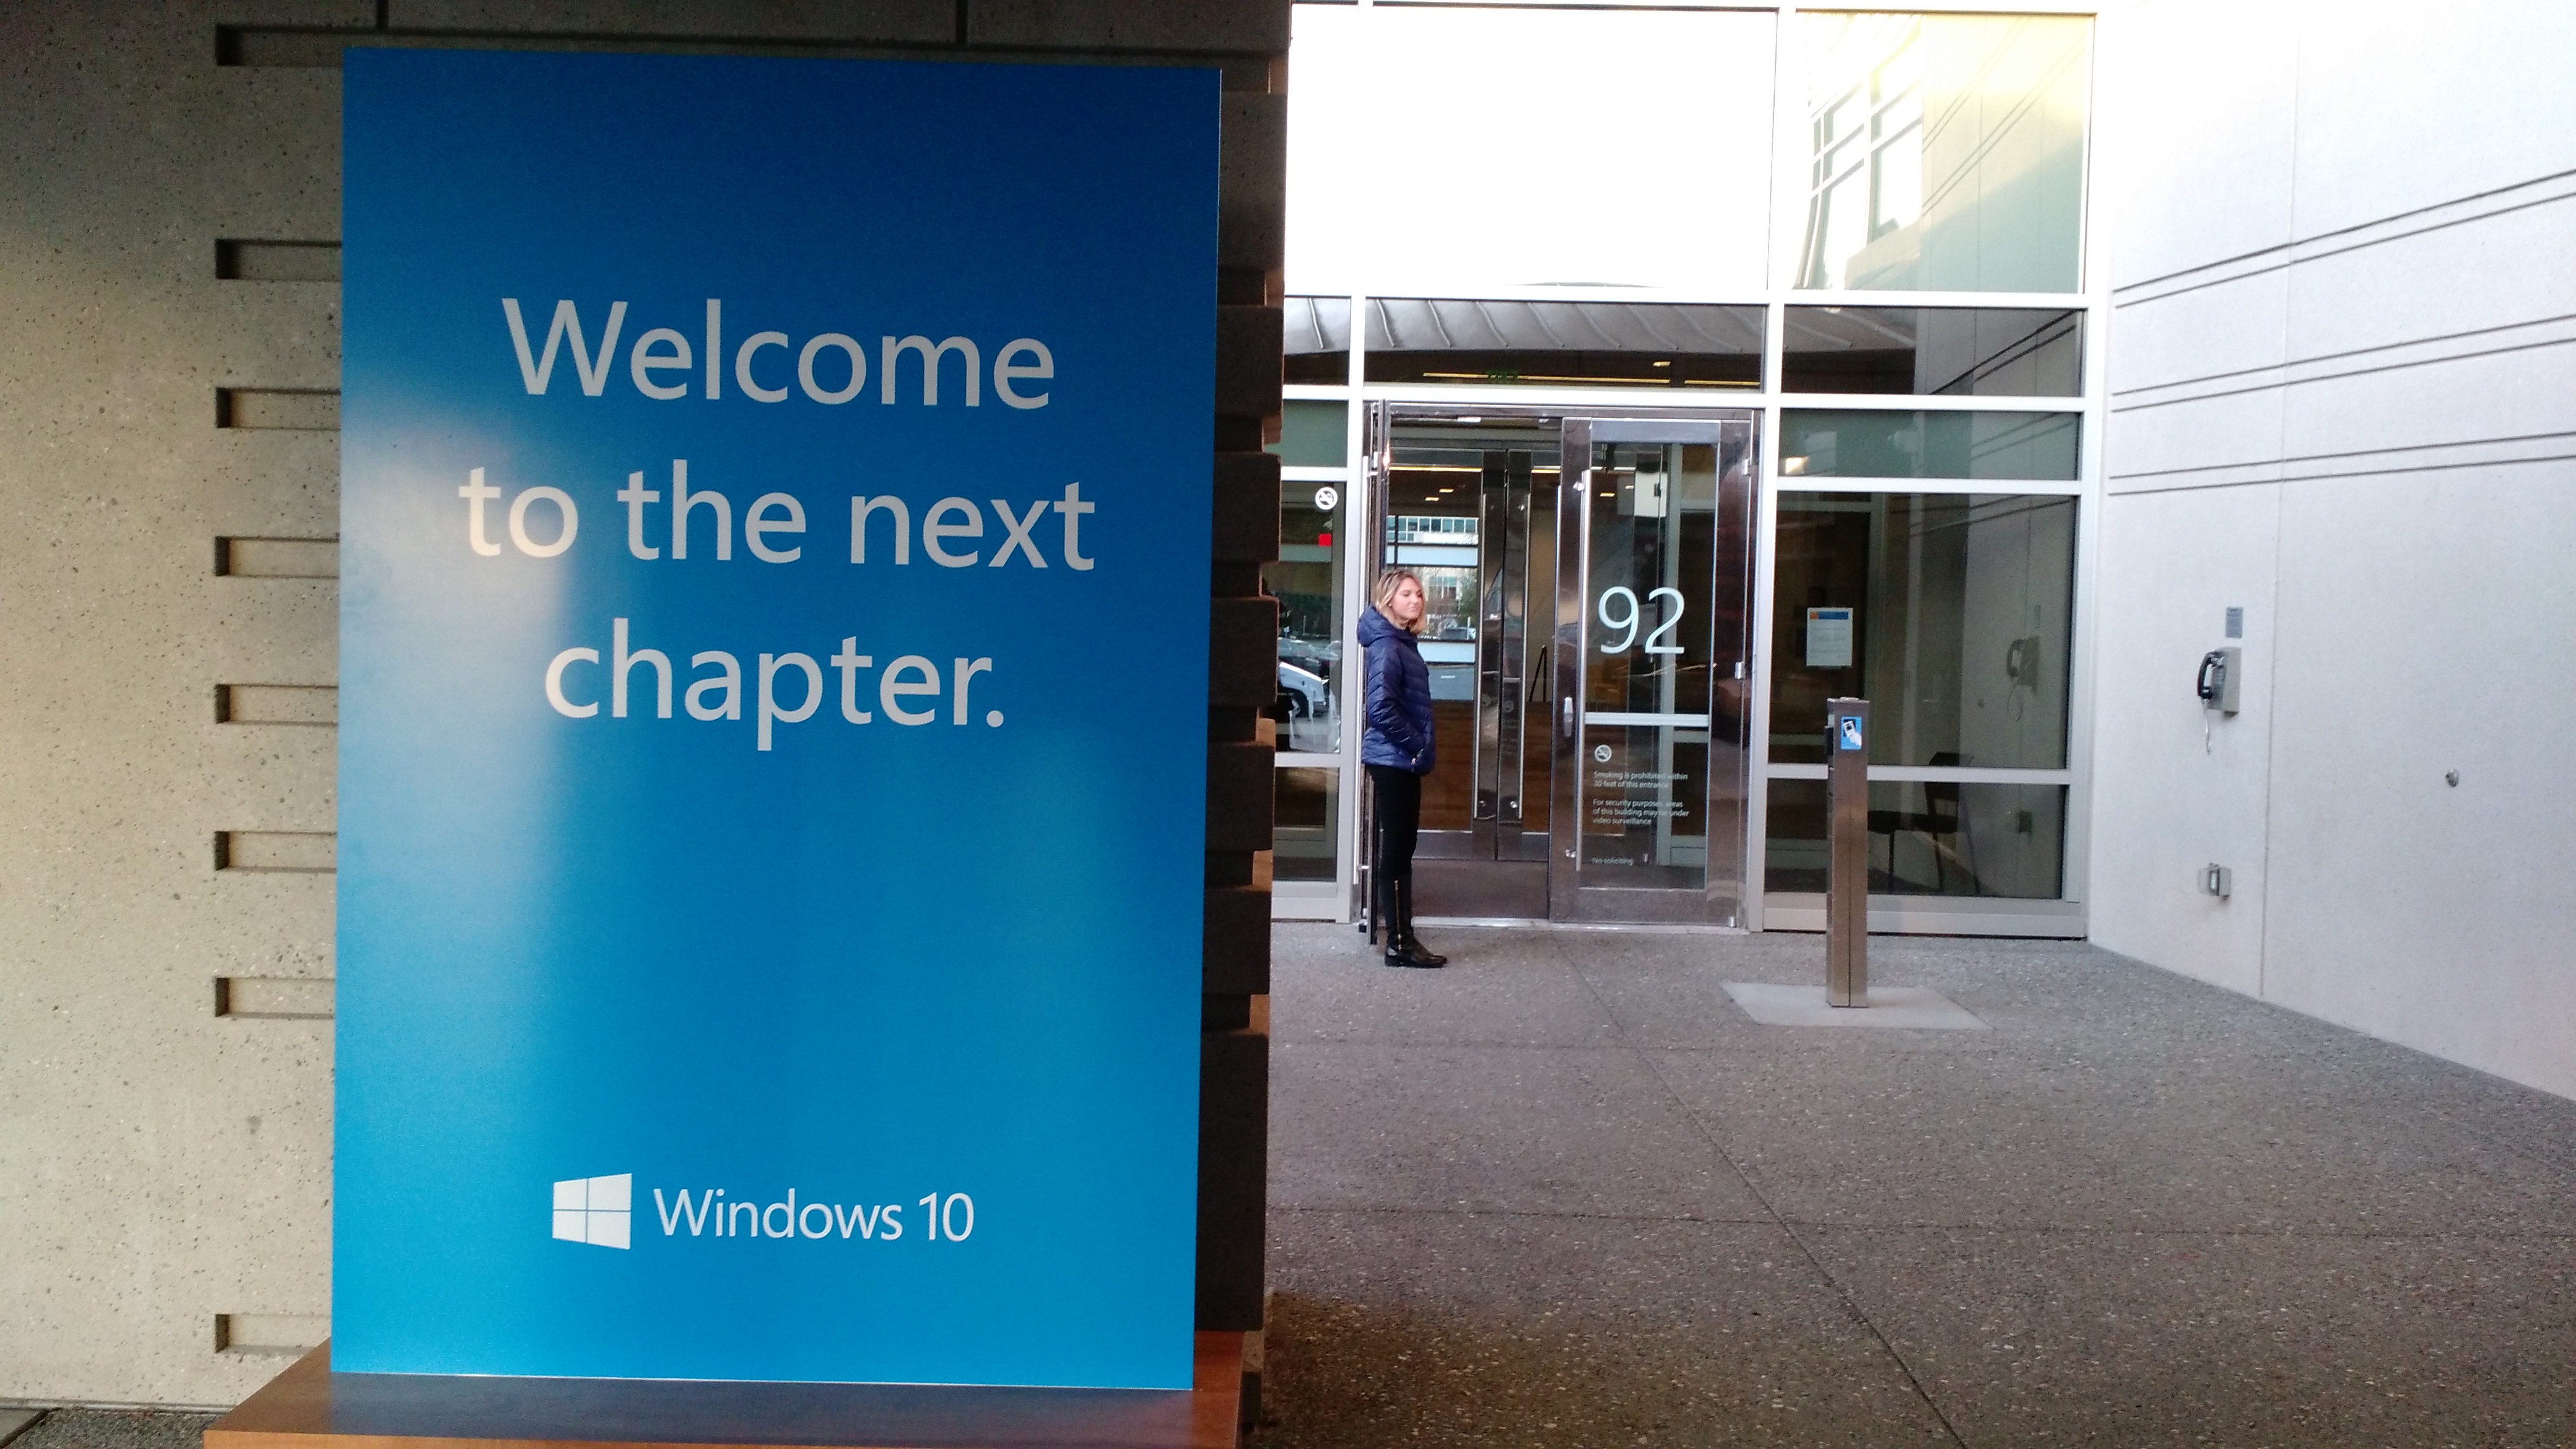 """Welcome to the next chapter."" of Microsoft Windows, that is. At a Windows 10 press event on the Microsoft campus in Redmond, Wash., on Jan. 21."